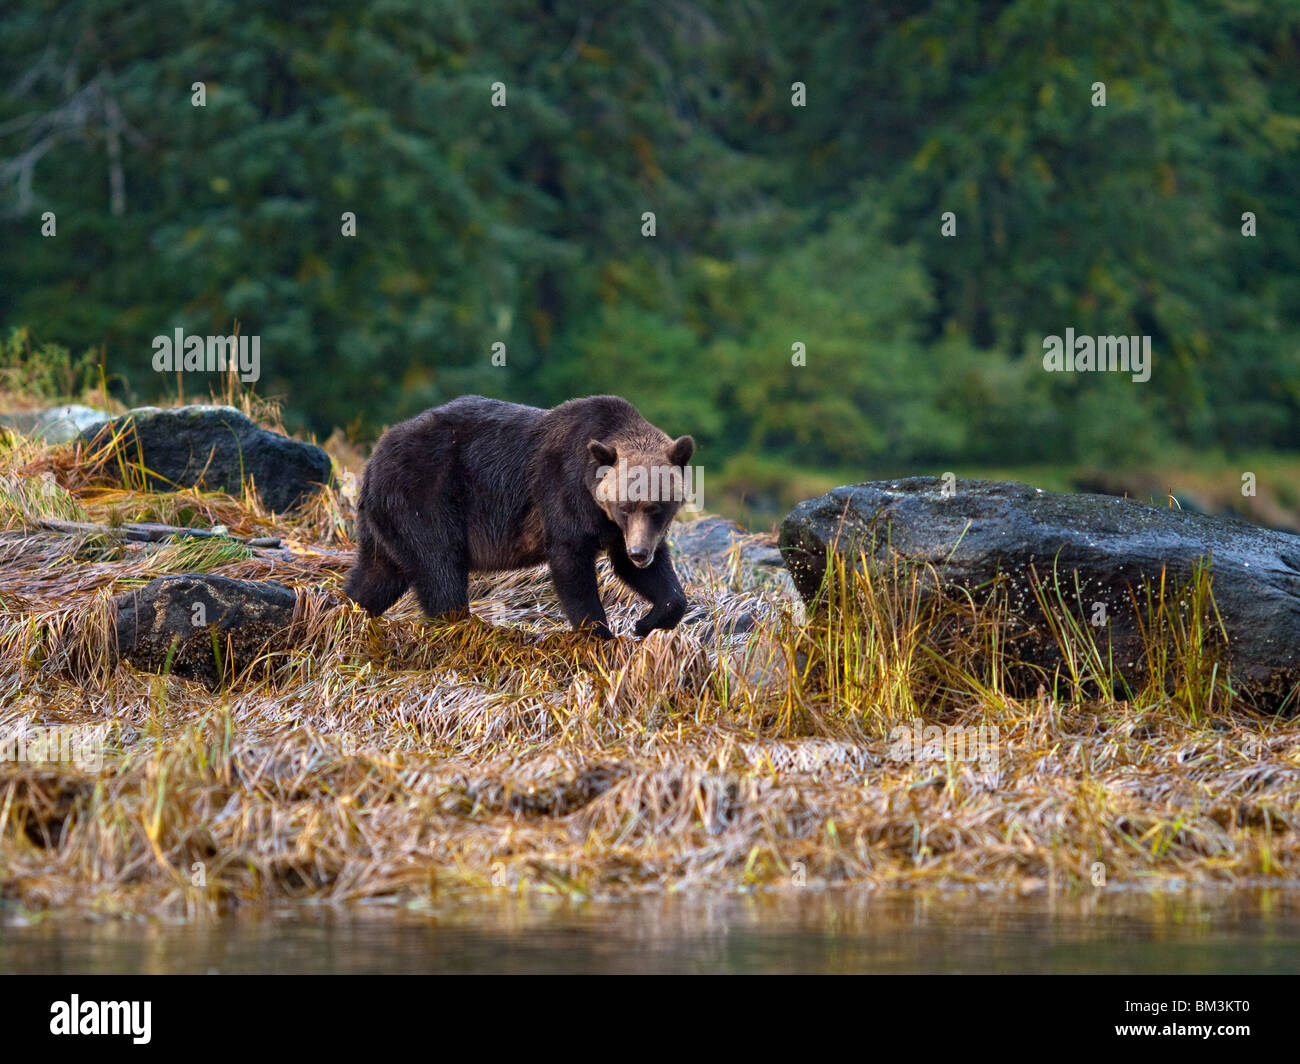 grizzy bear, ursus arctos horribilis, walking along the rivers Stock Photo